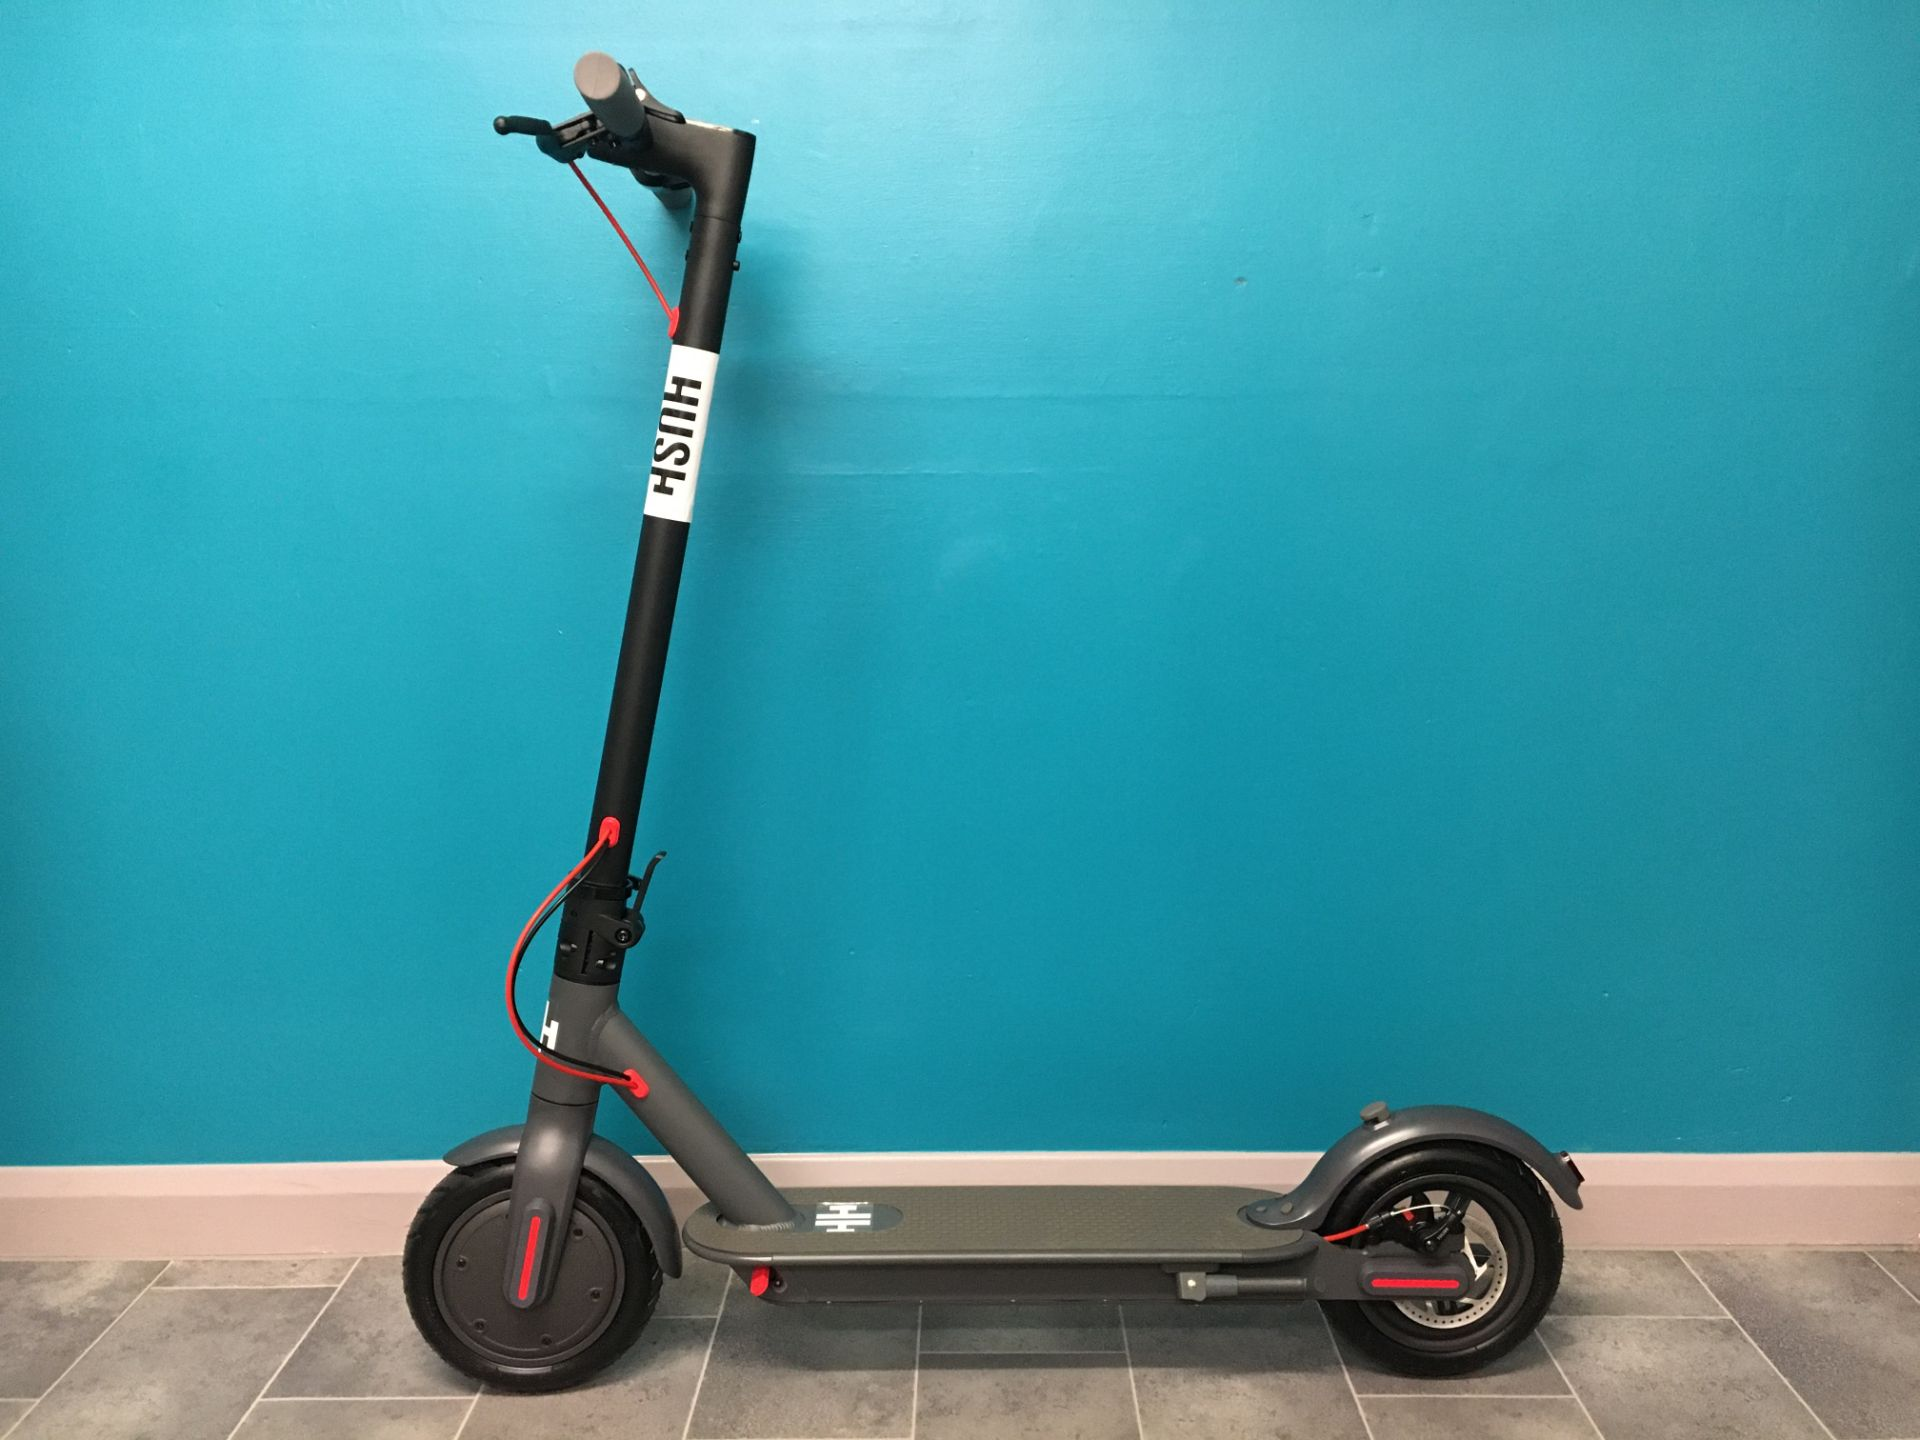 + VAT Brand New Hush Foldable Electric Scooter - Three Speeds - Max Speed 25km/h - ABS Disc